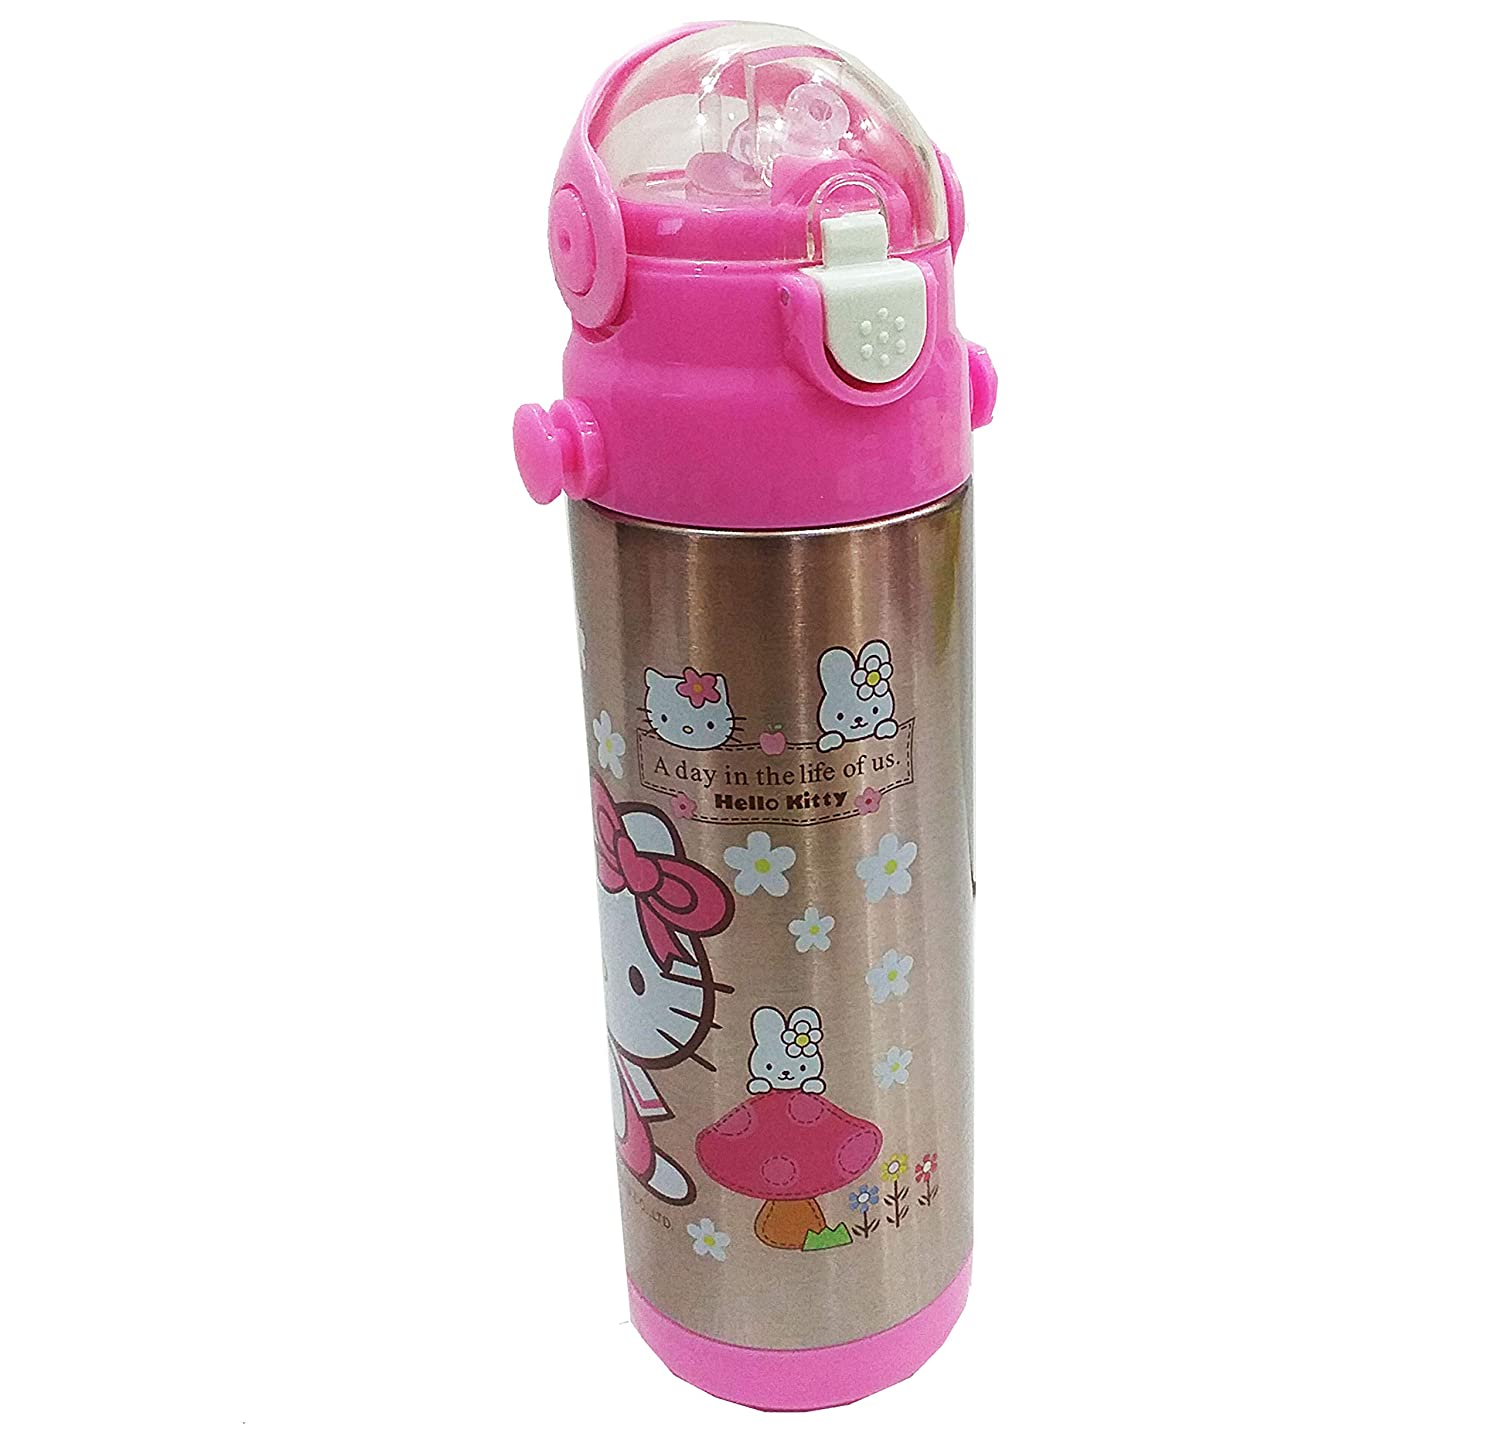 01d6b5472 Buy Dhinchak Cat Print Plastic and Stainless Steel Water Bottle with Child  Safety Lock